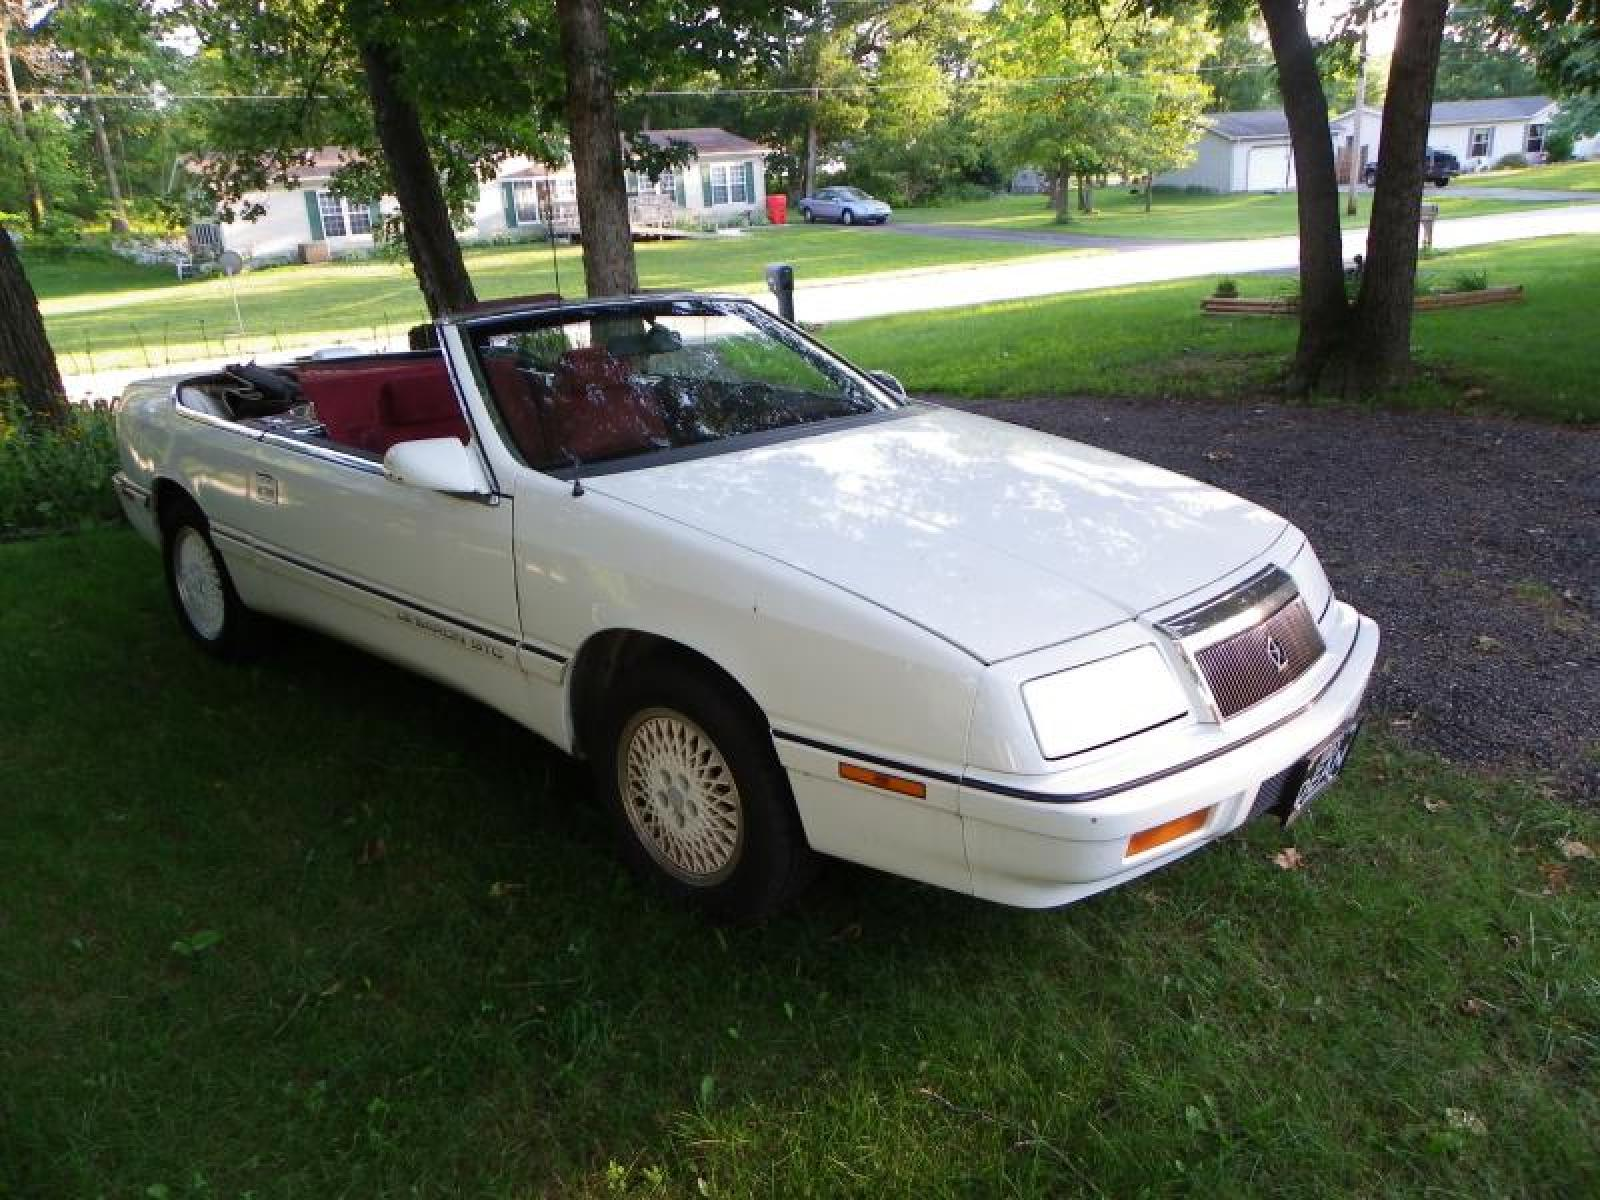 1991 chrysler le baron information and photos zombiedrive 800 1024 1280 1600 origin 1991 chrysler le baron sciox Image collections